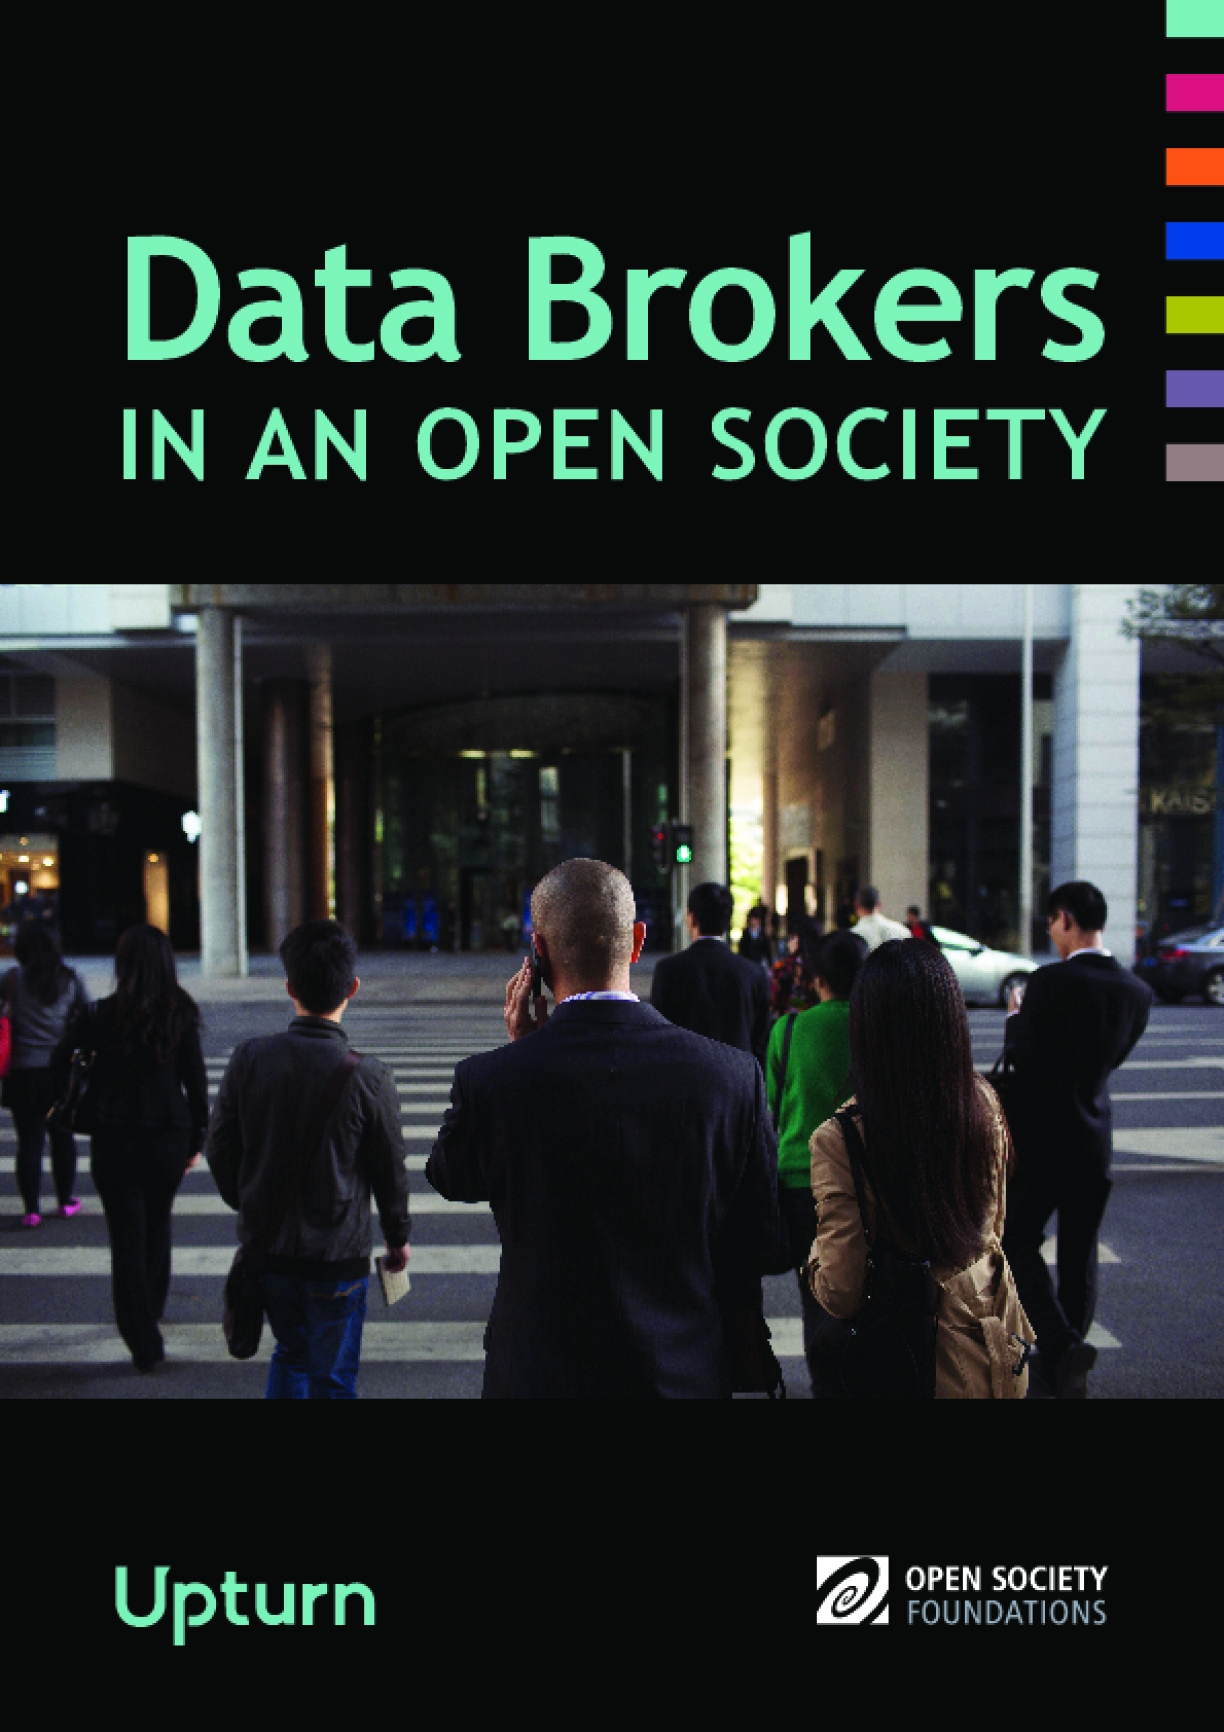 Data Brokers in an Open Society